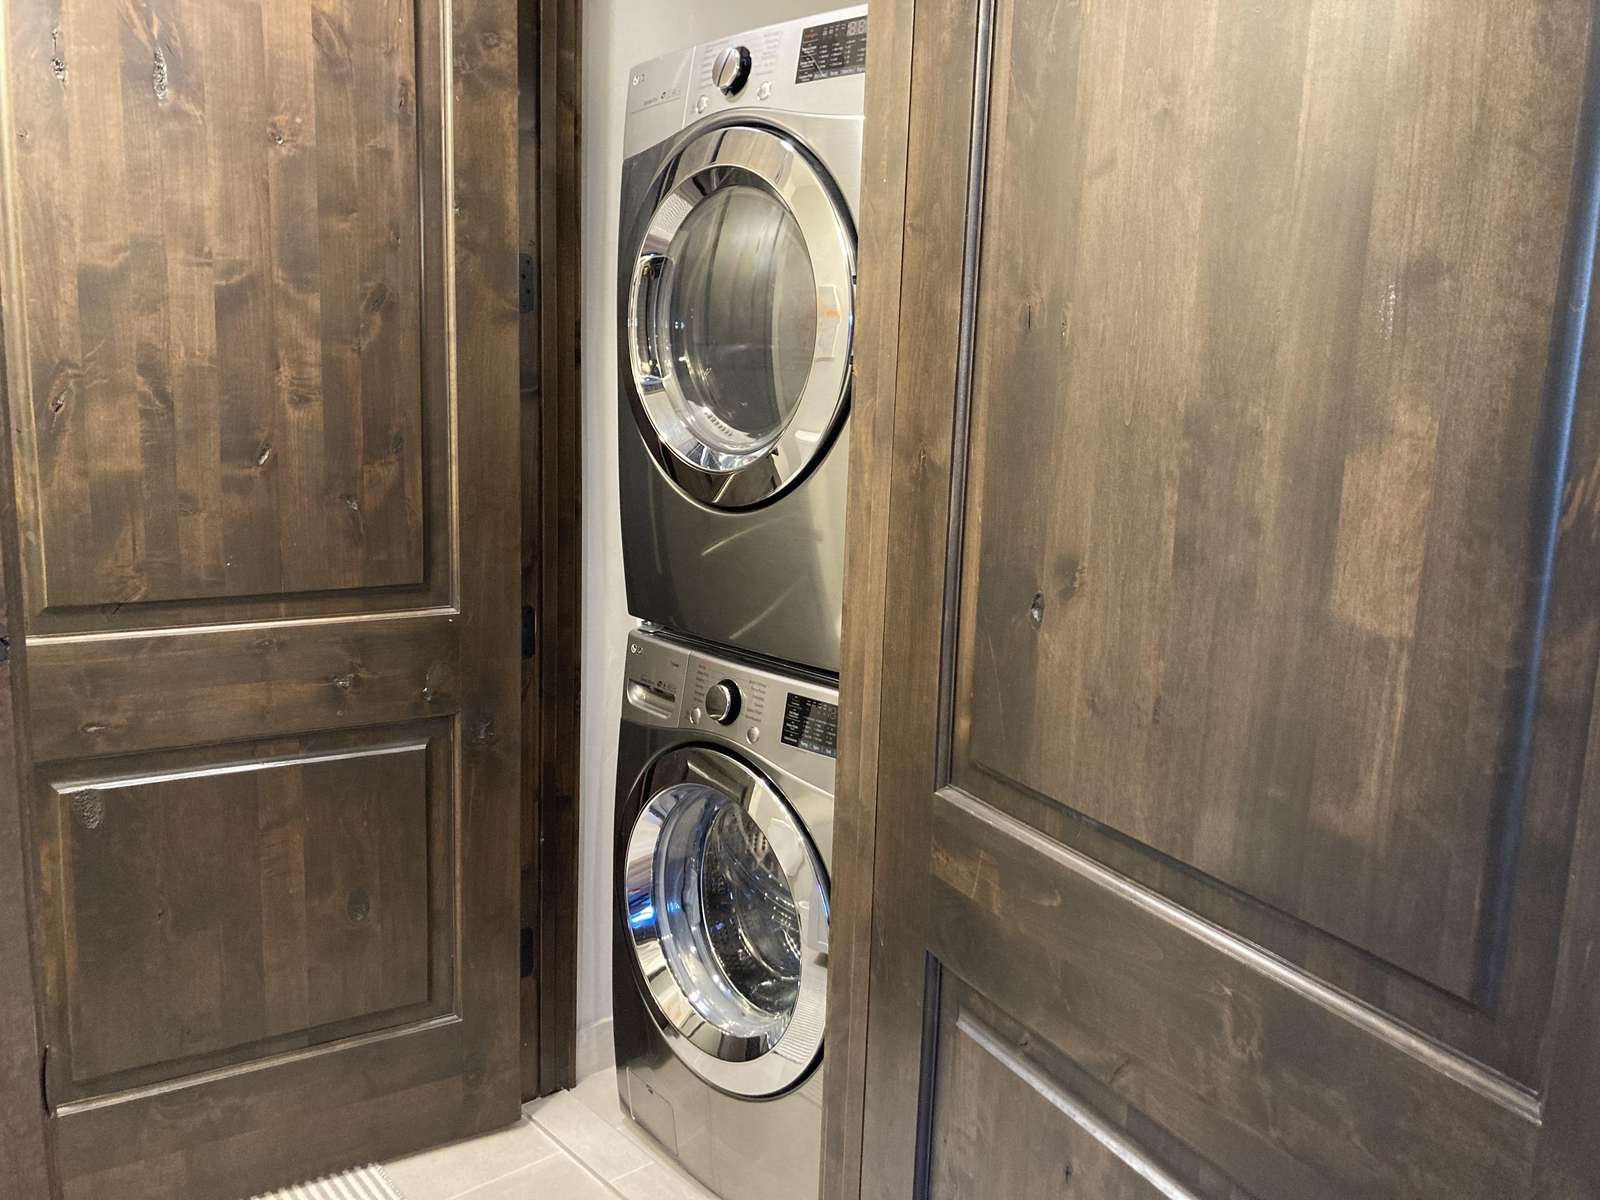 Washer and dryer in the half bathroom next to kitchen